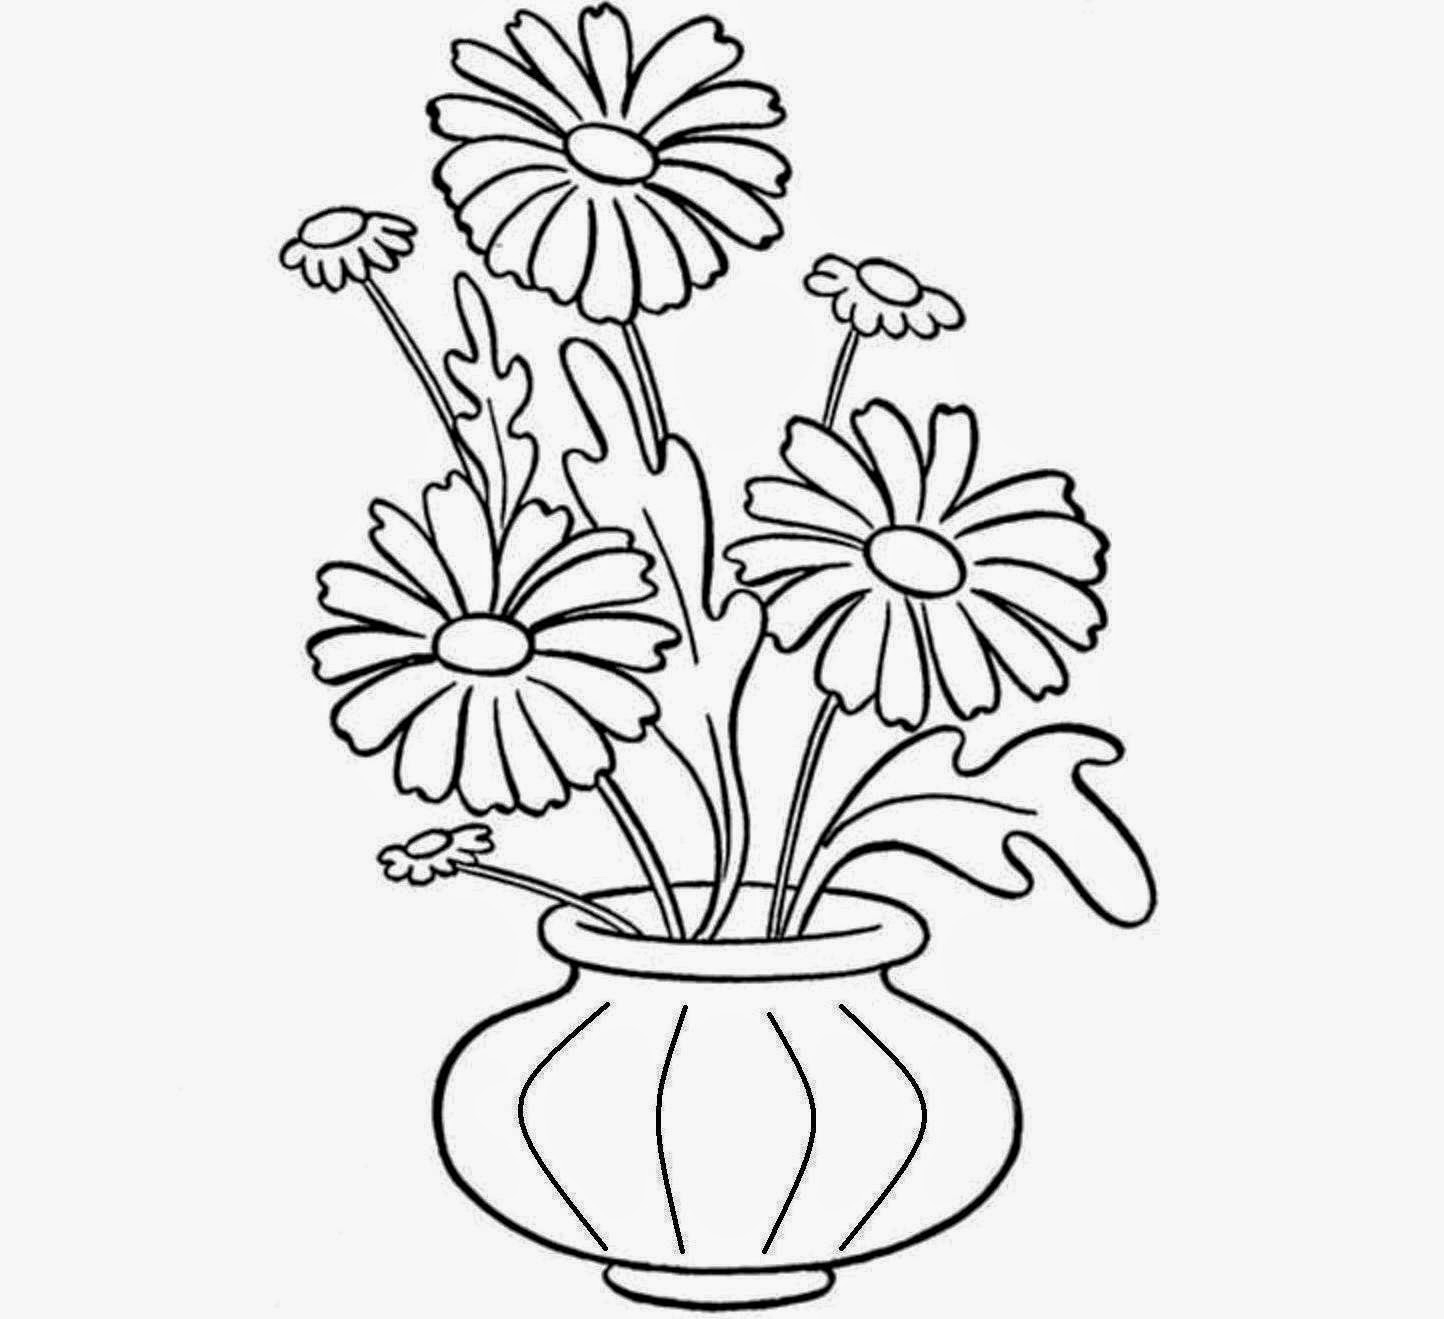 Flower Pot Drawing Images At Getdrawings Free For Personal Use